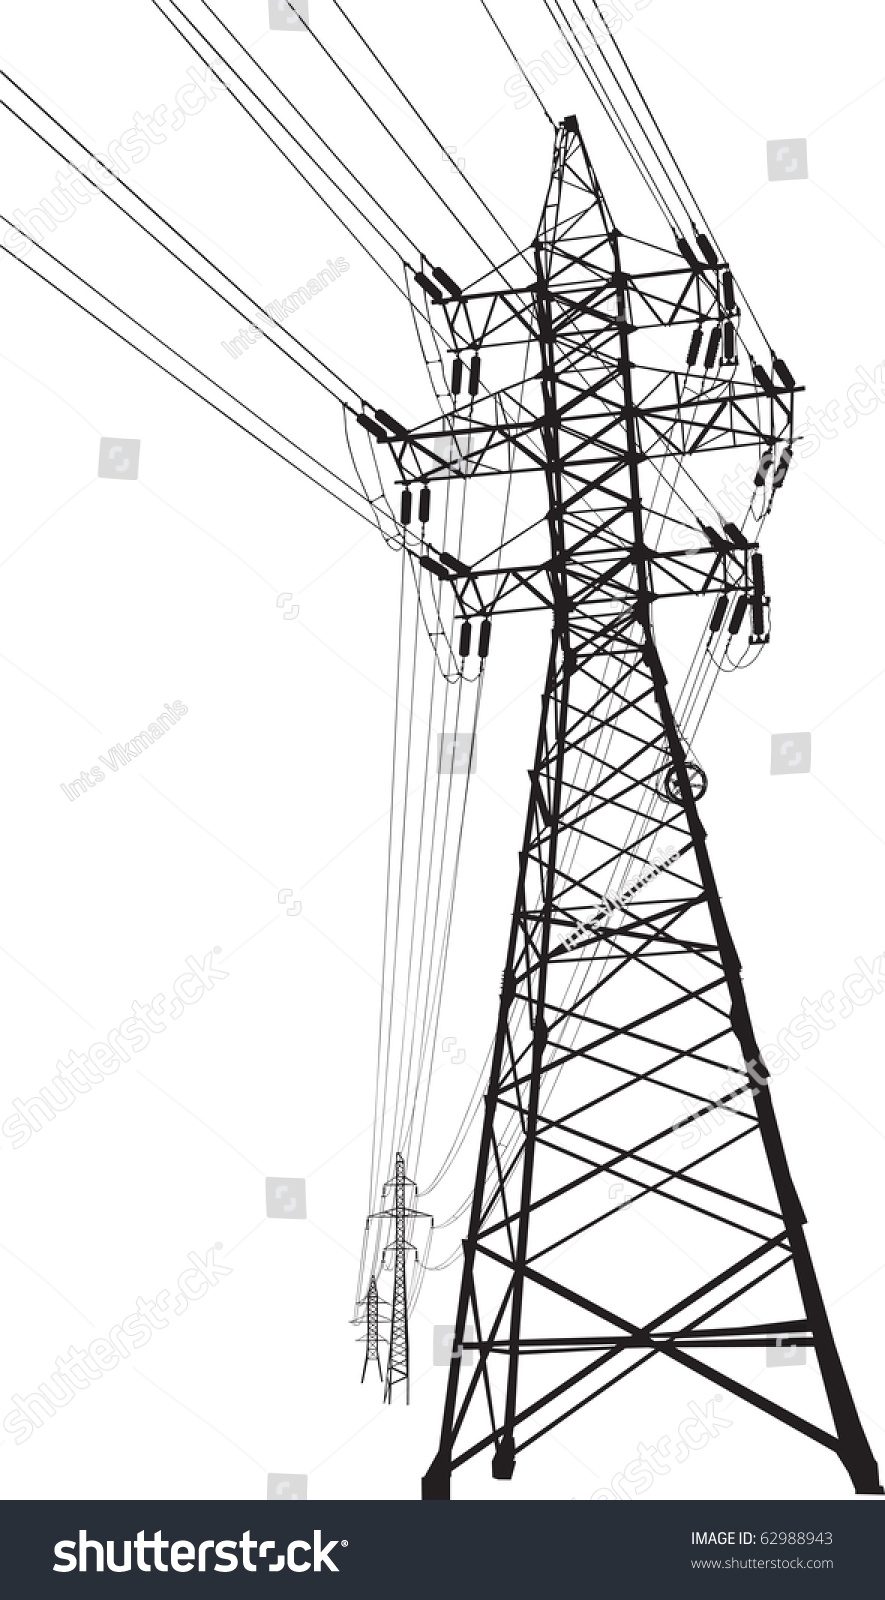 High Voltage Electrical Lines : Vector silhouette high voltage power lines stock